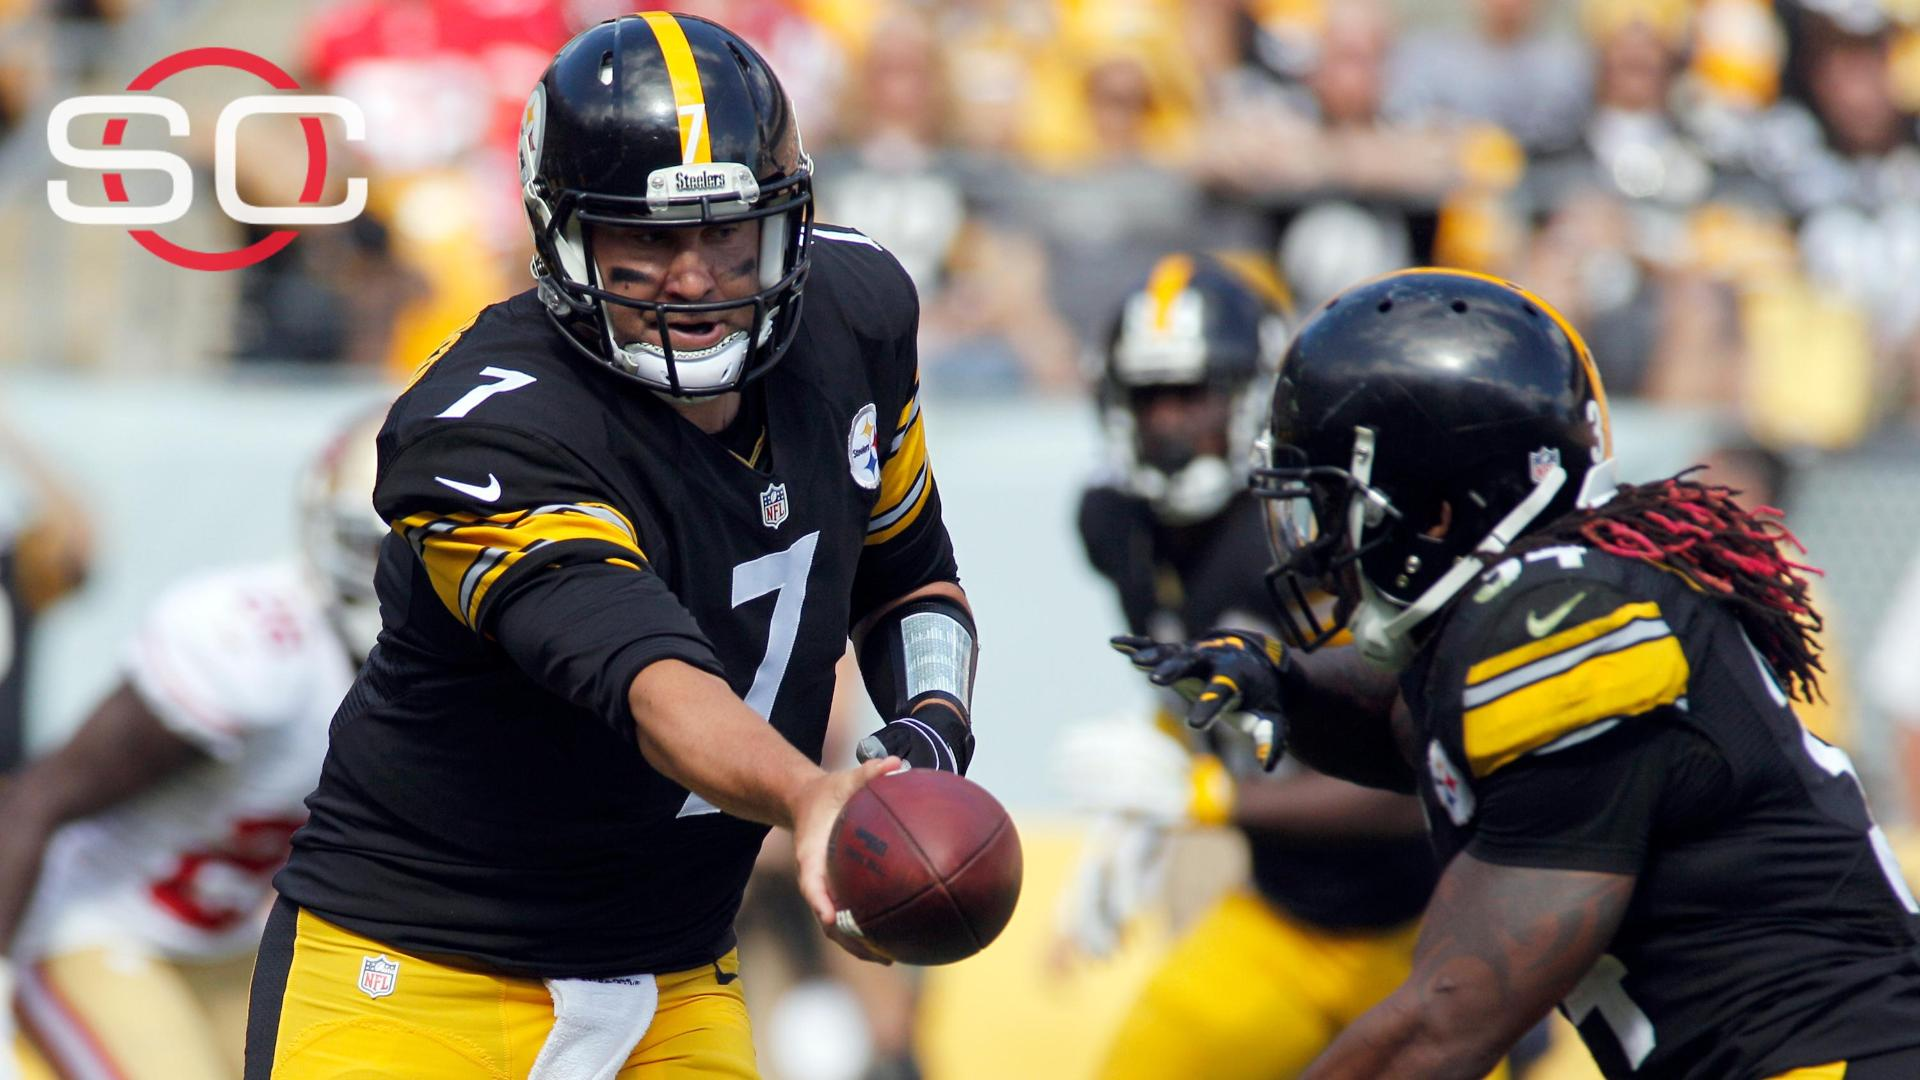 http://a.espncdn.com/media/motion/2015/0923/dm_150923_nfl_steelers_two_point_conversions1068/dm_150923_nfl_steelers_two_point_conversions1068.jpg